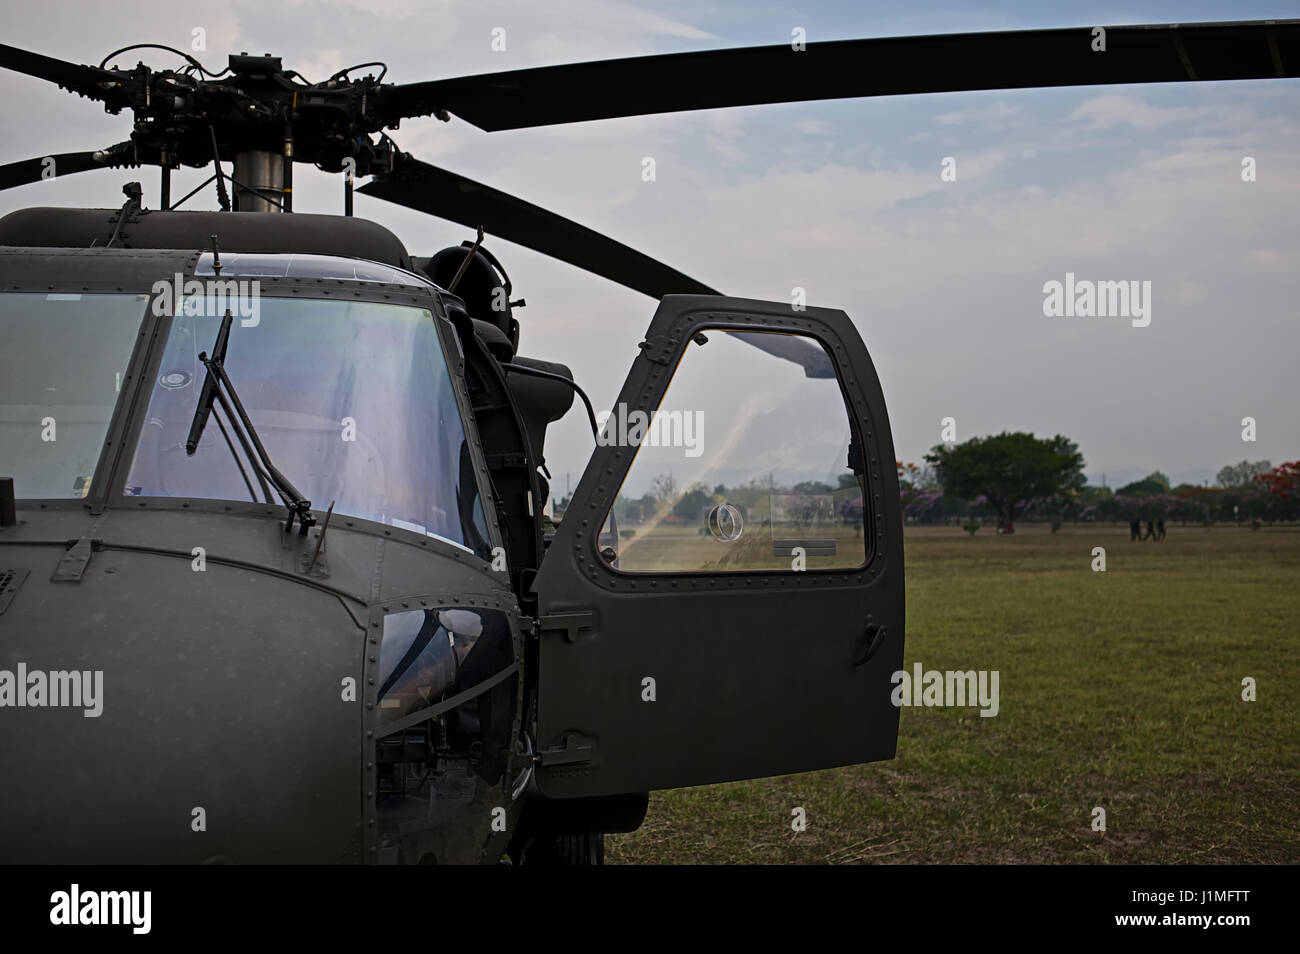 Front view of military helicopter cockpit - Stock Image